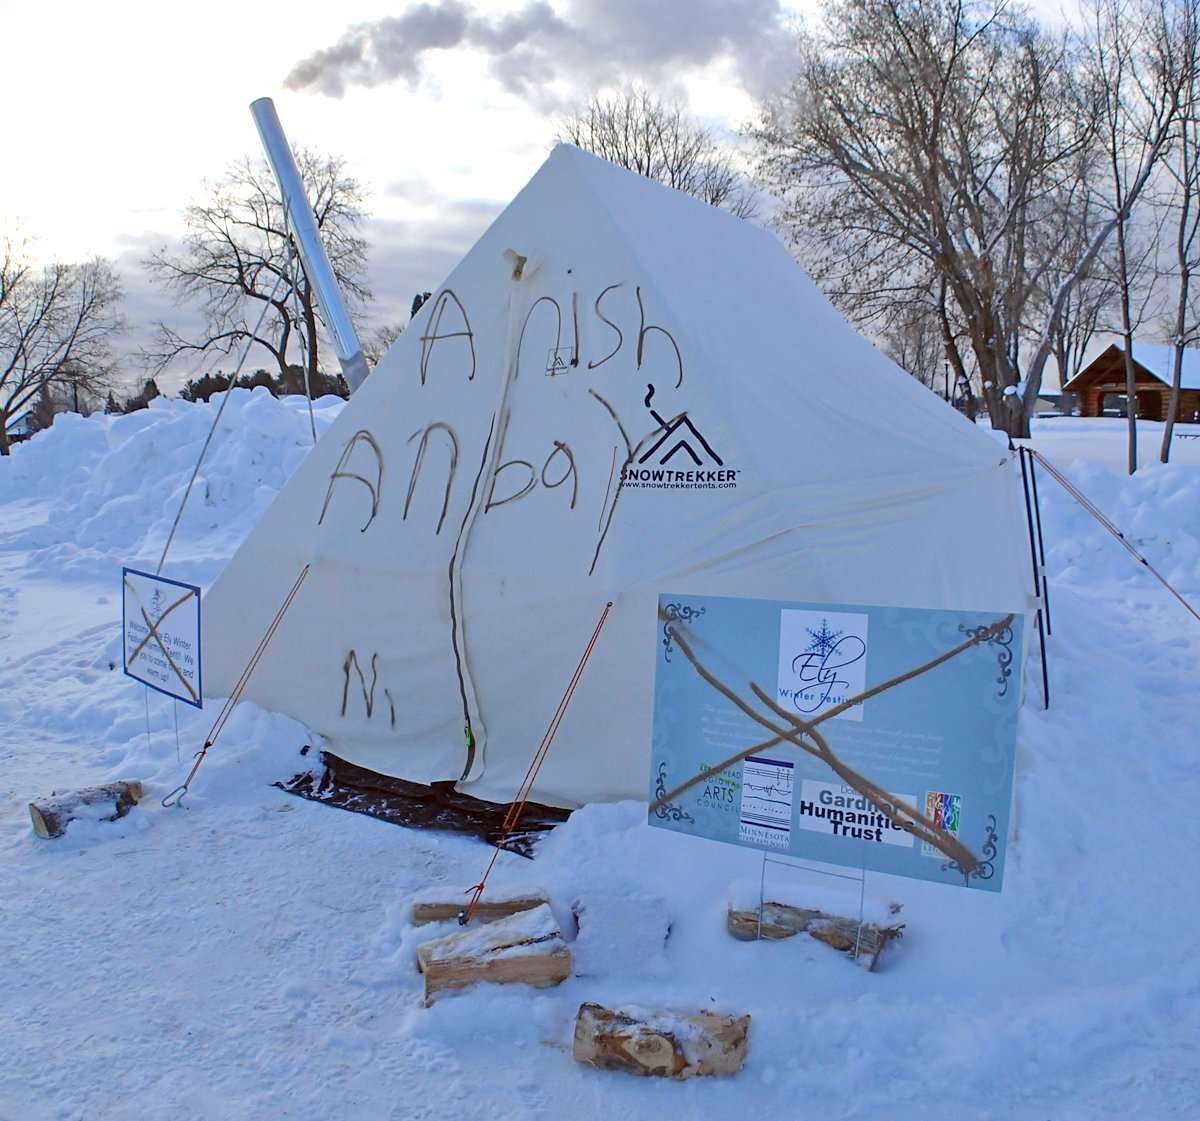 Spray paint damage mars a warming tent and sign in Whiteside Park.